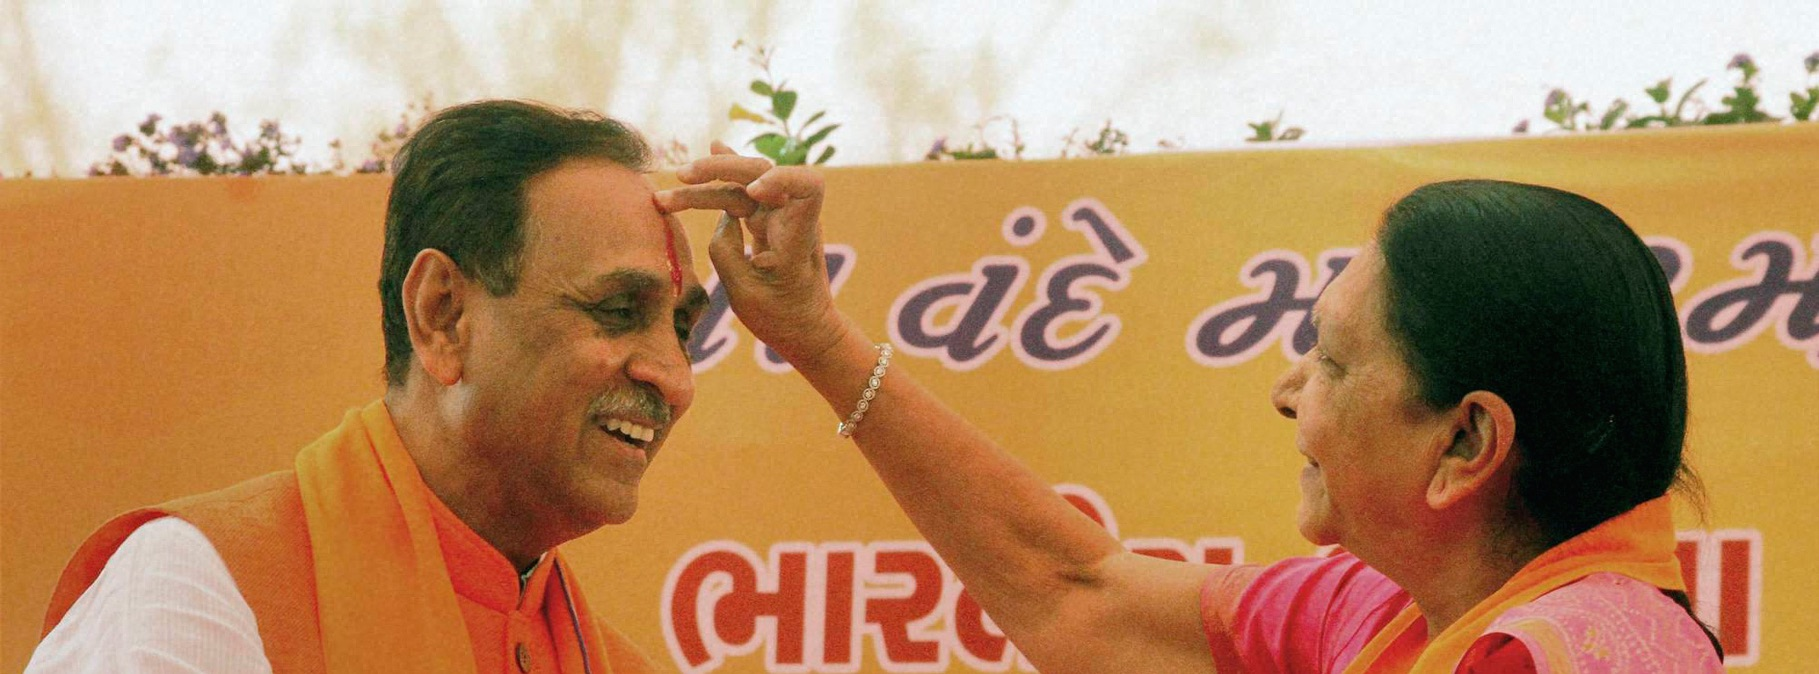 From RSS to BJP and now Chief Minister of Gujarat, Vijay Rupani is Modi's Choice